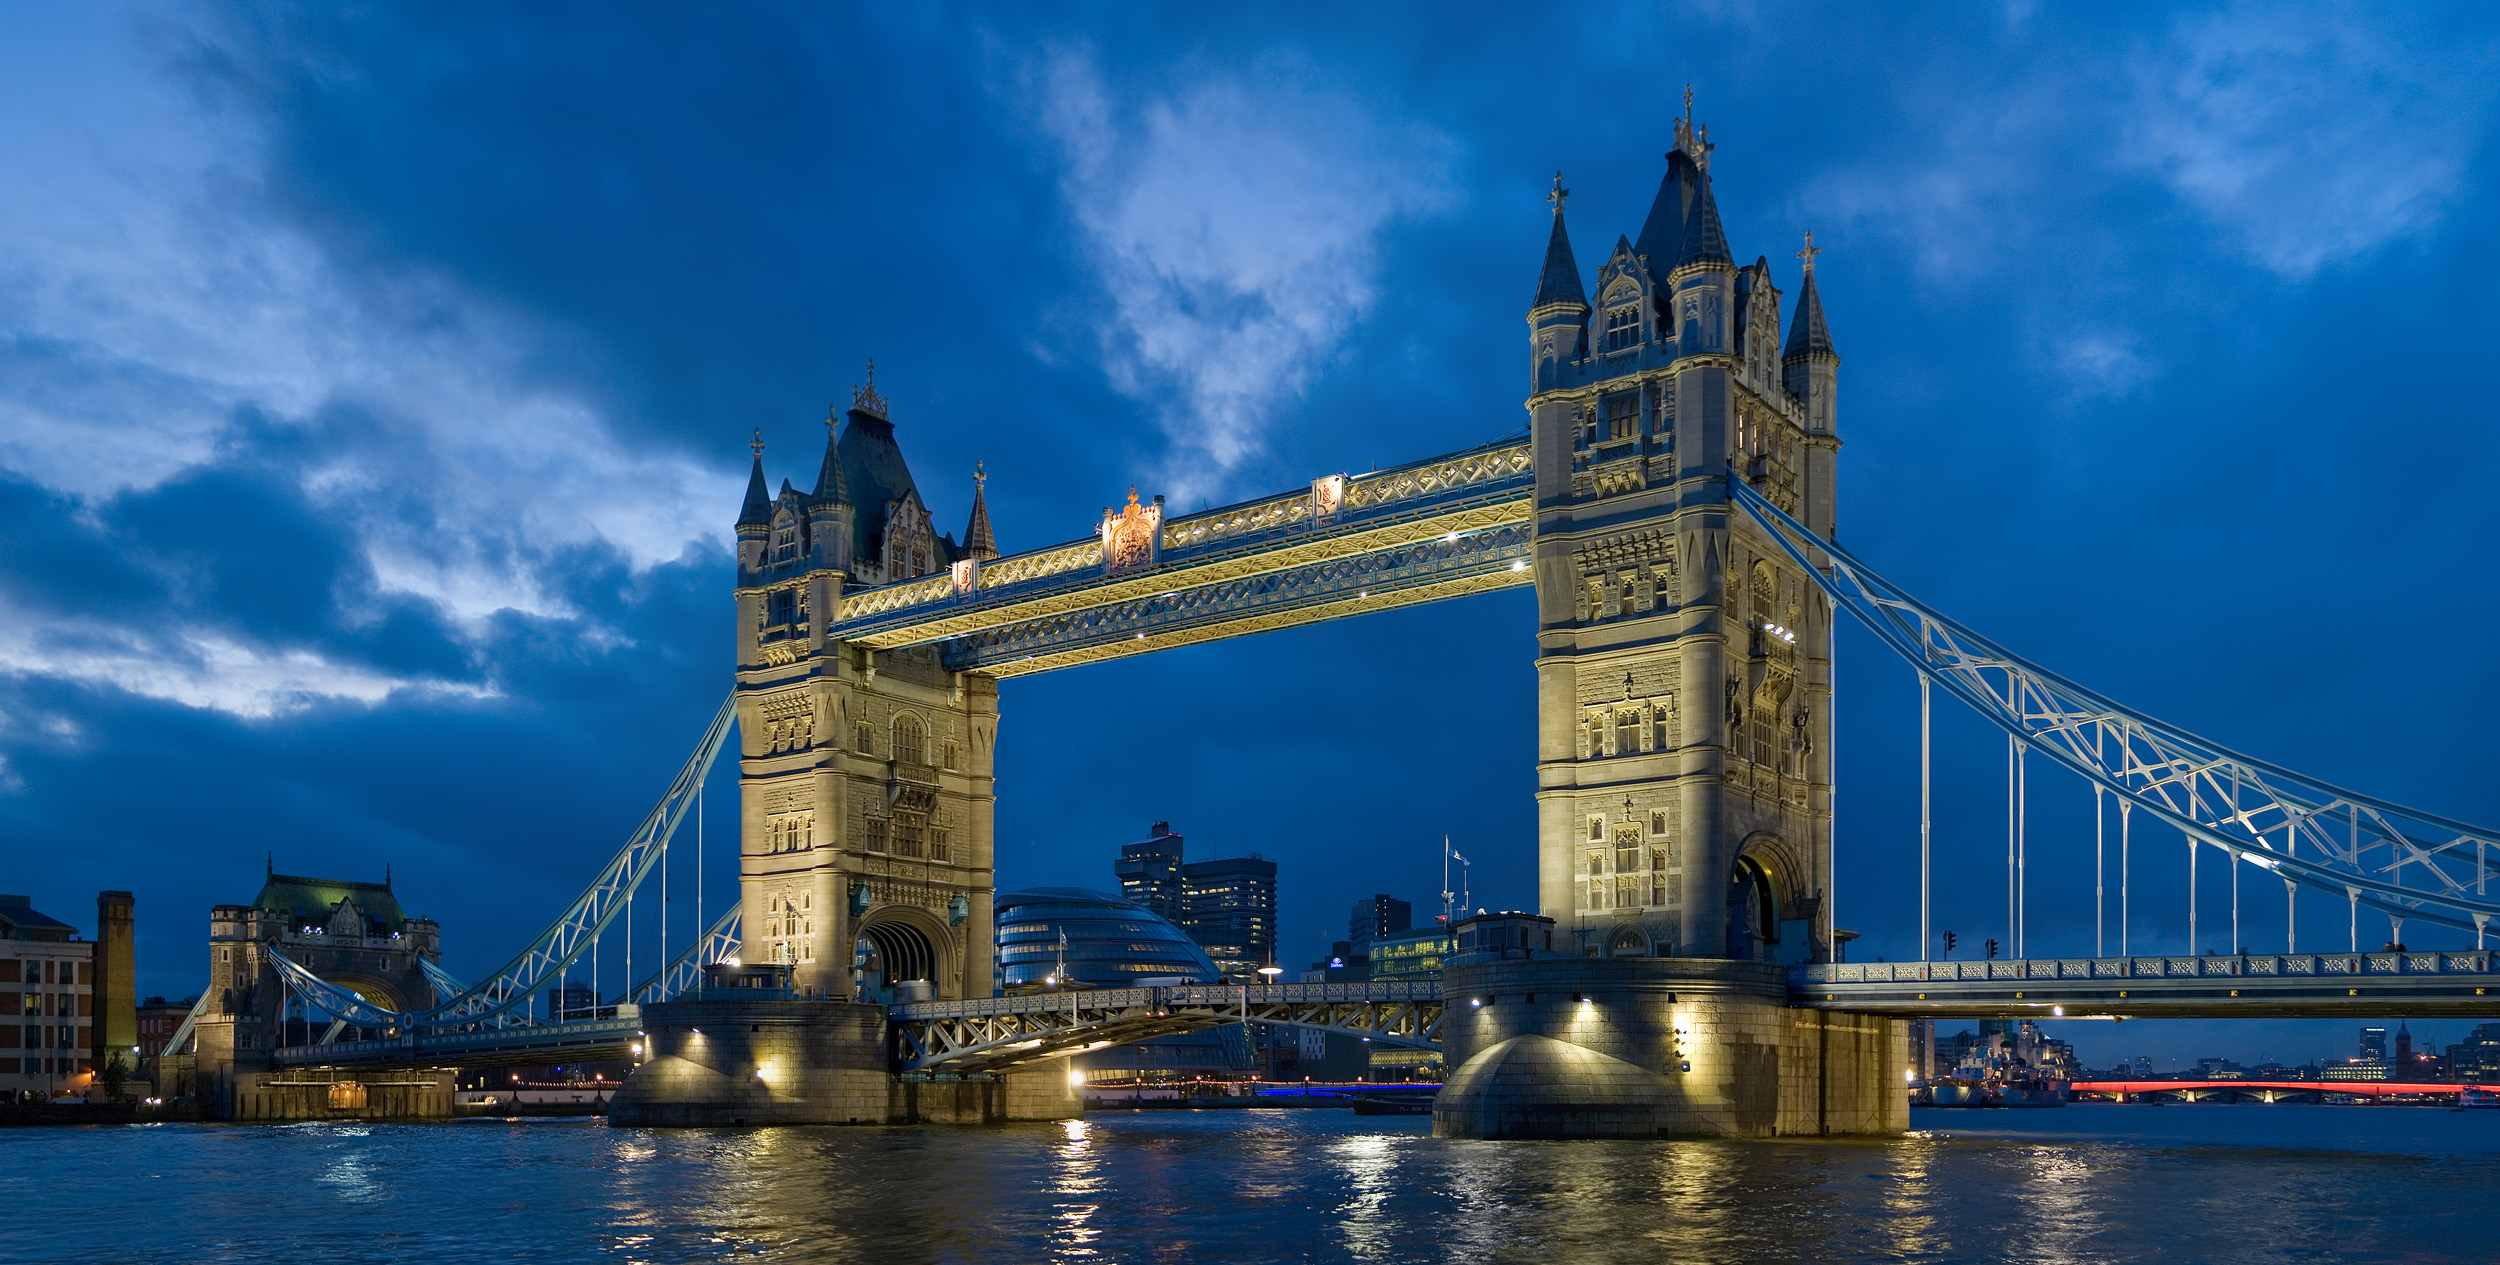 London Bridge Images Tower Bridge File:tower Bridge London